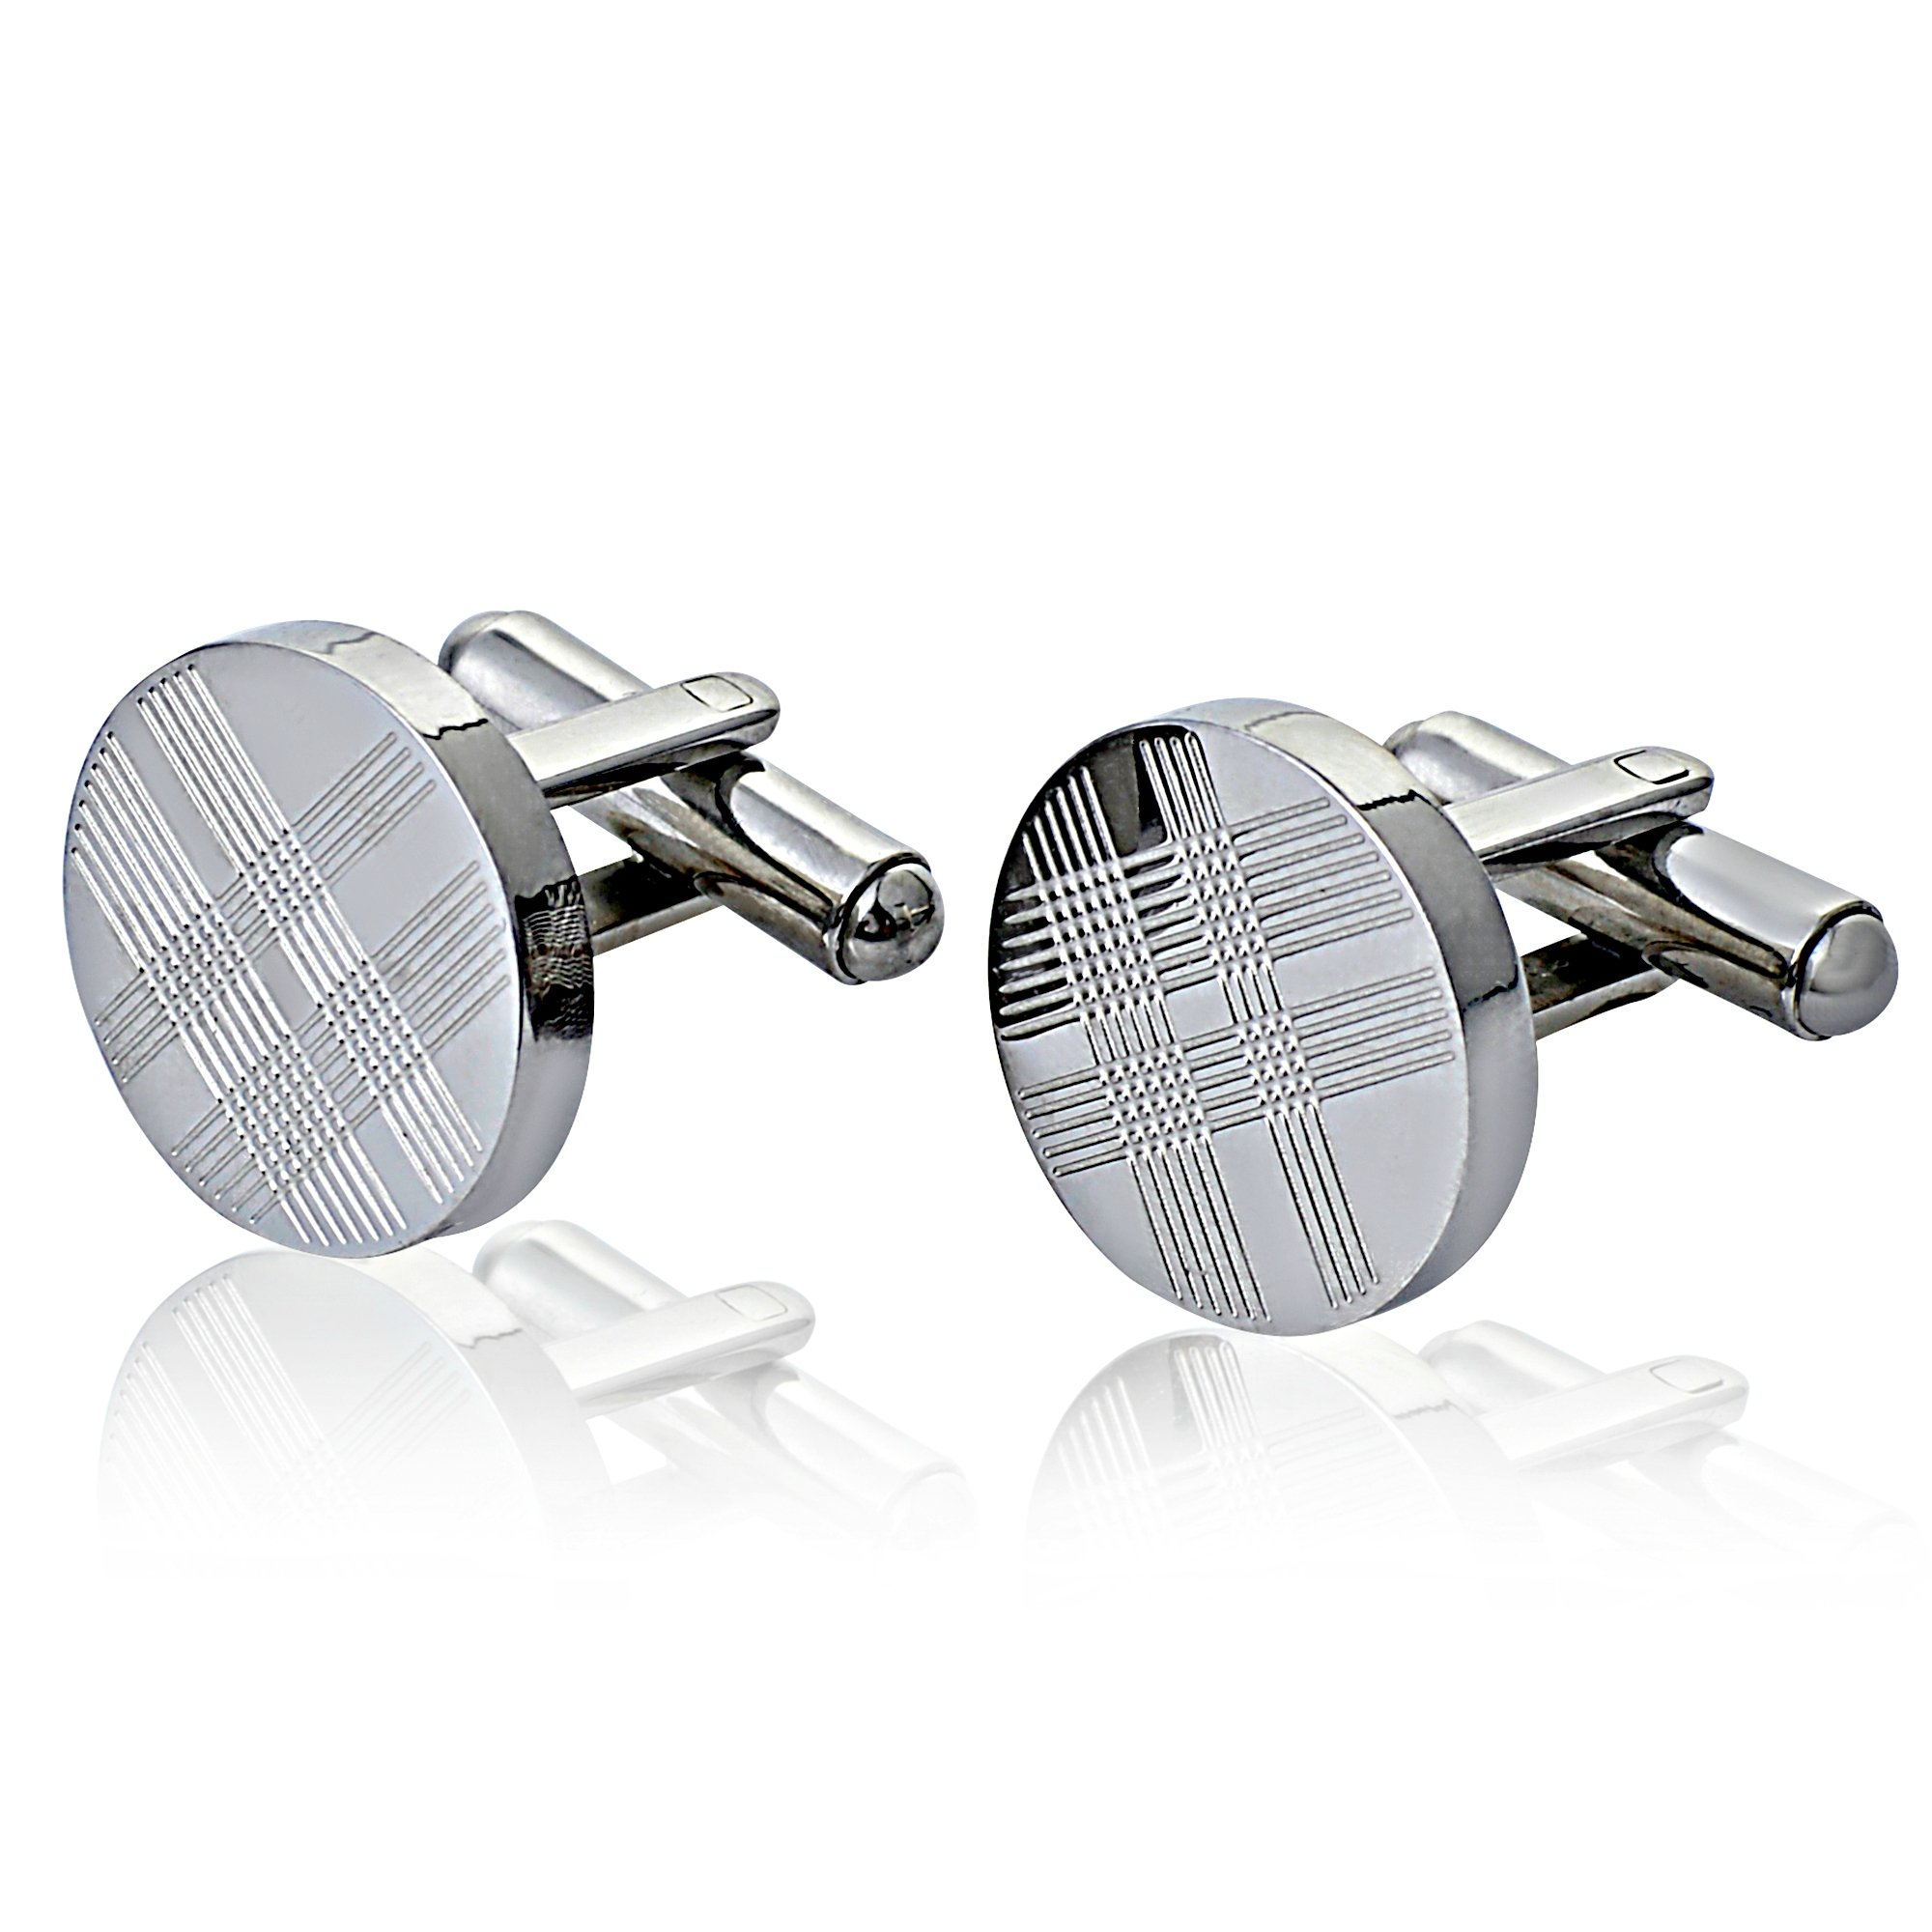 Jemdesign's CuffLink Round Stainless Steel With Tartan Pattern For Men's Accessories French Cuff Dress Shirt Links Wedding Business Anniversary Cuff link Set